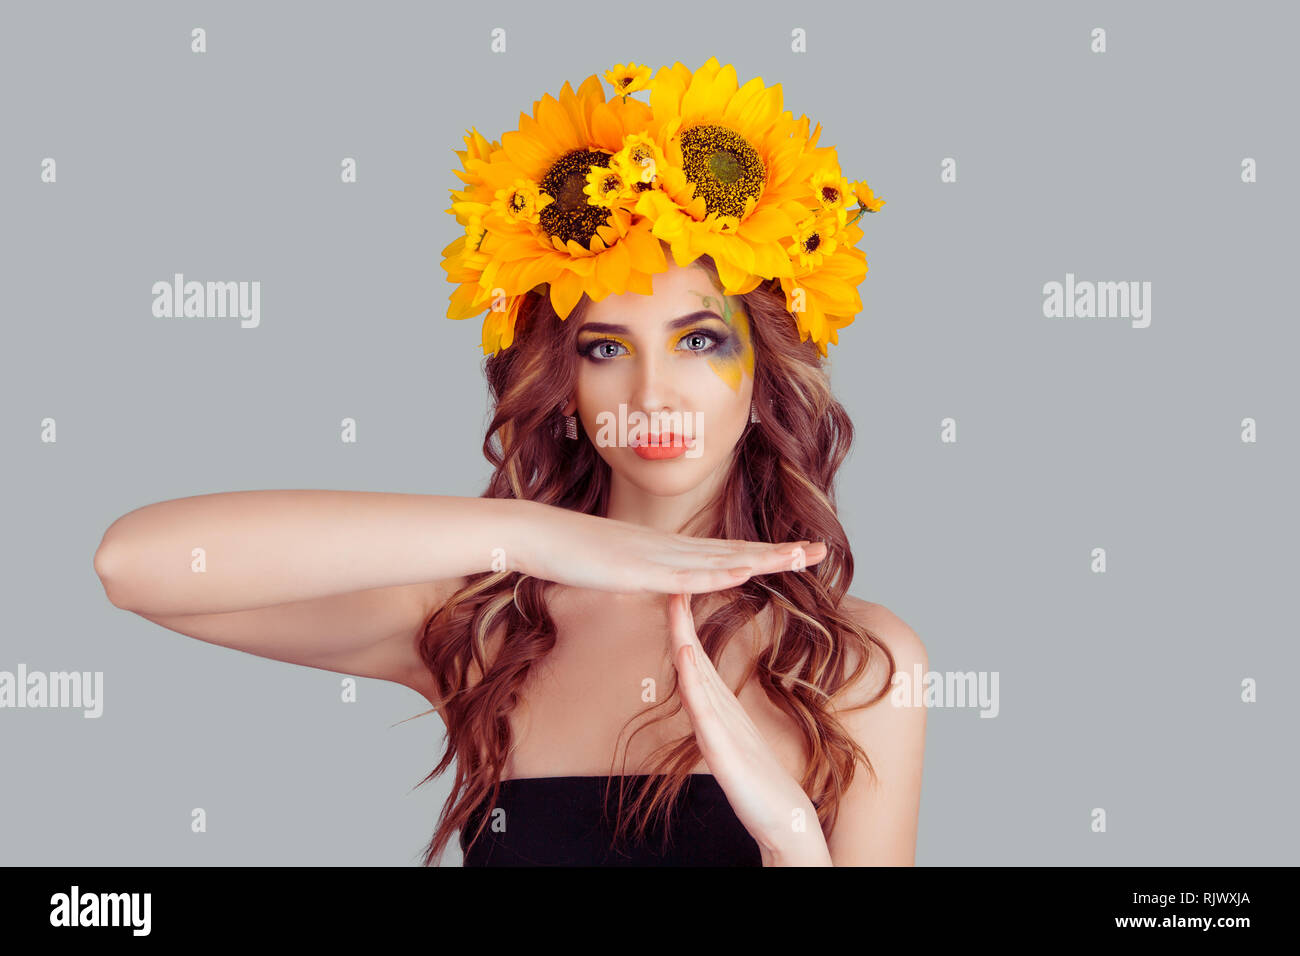 woman in crown from sunflowers making a timeout gesture - Stock Image